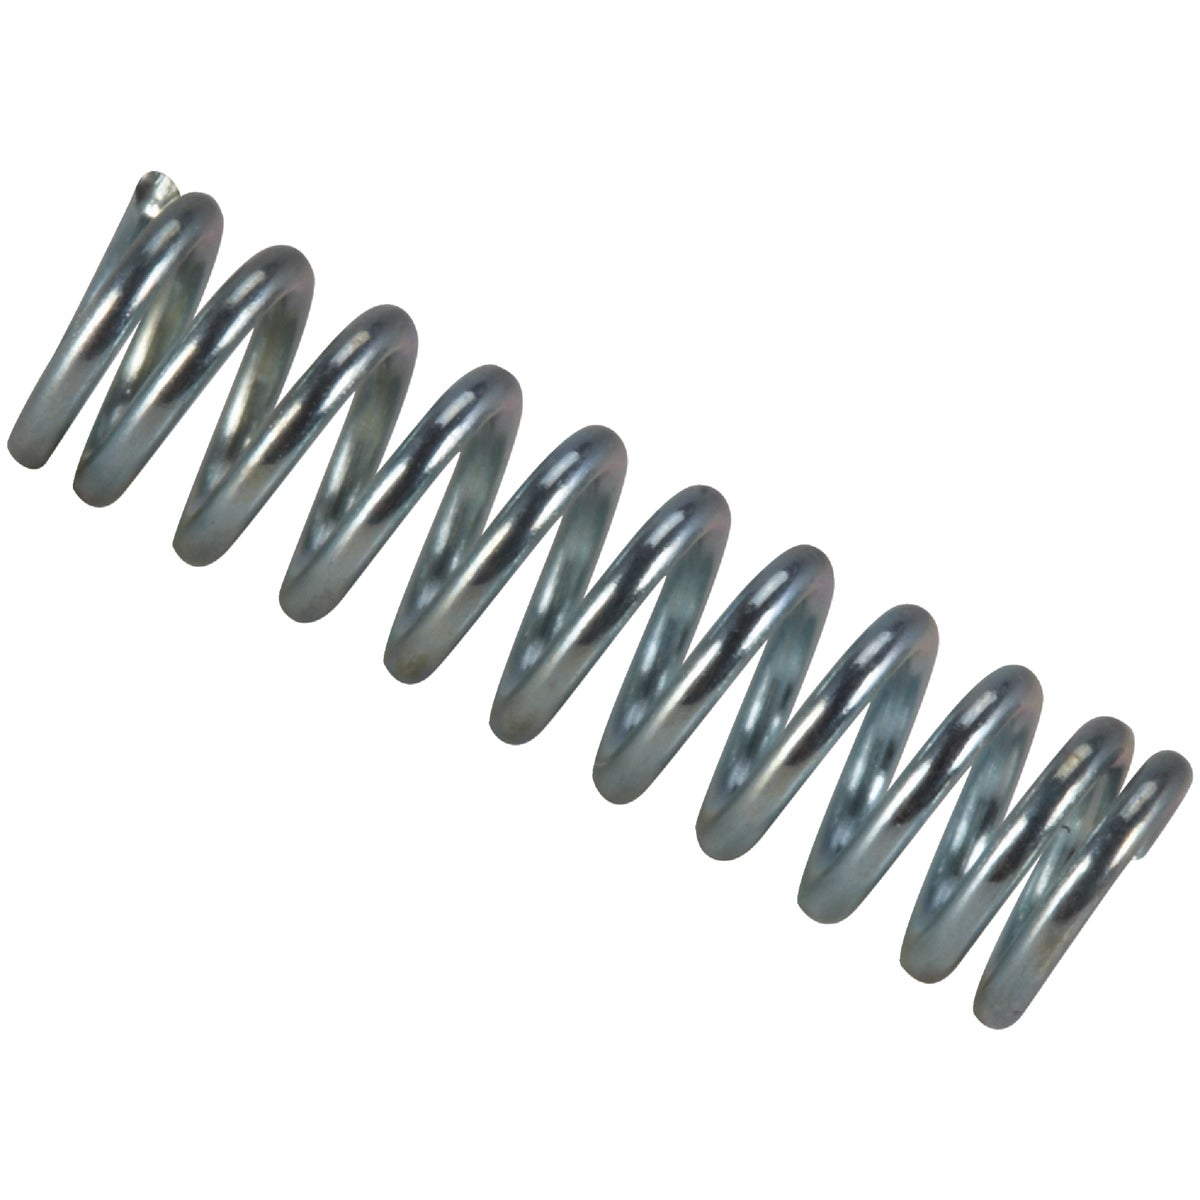 COMPRESSION SPRING - C-668 by Century Spring Corp